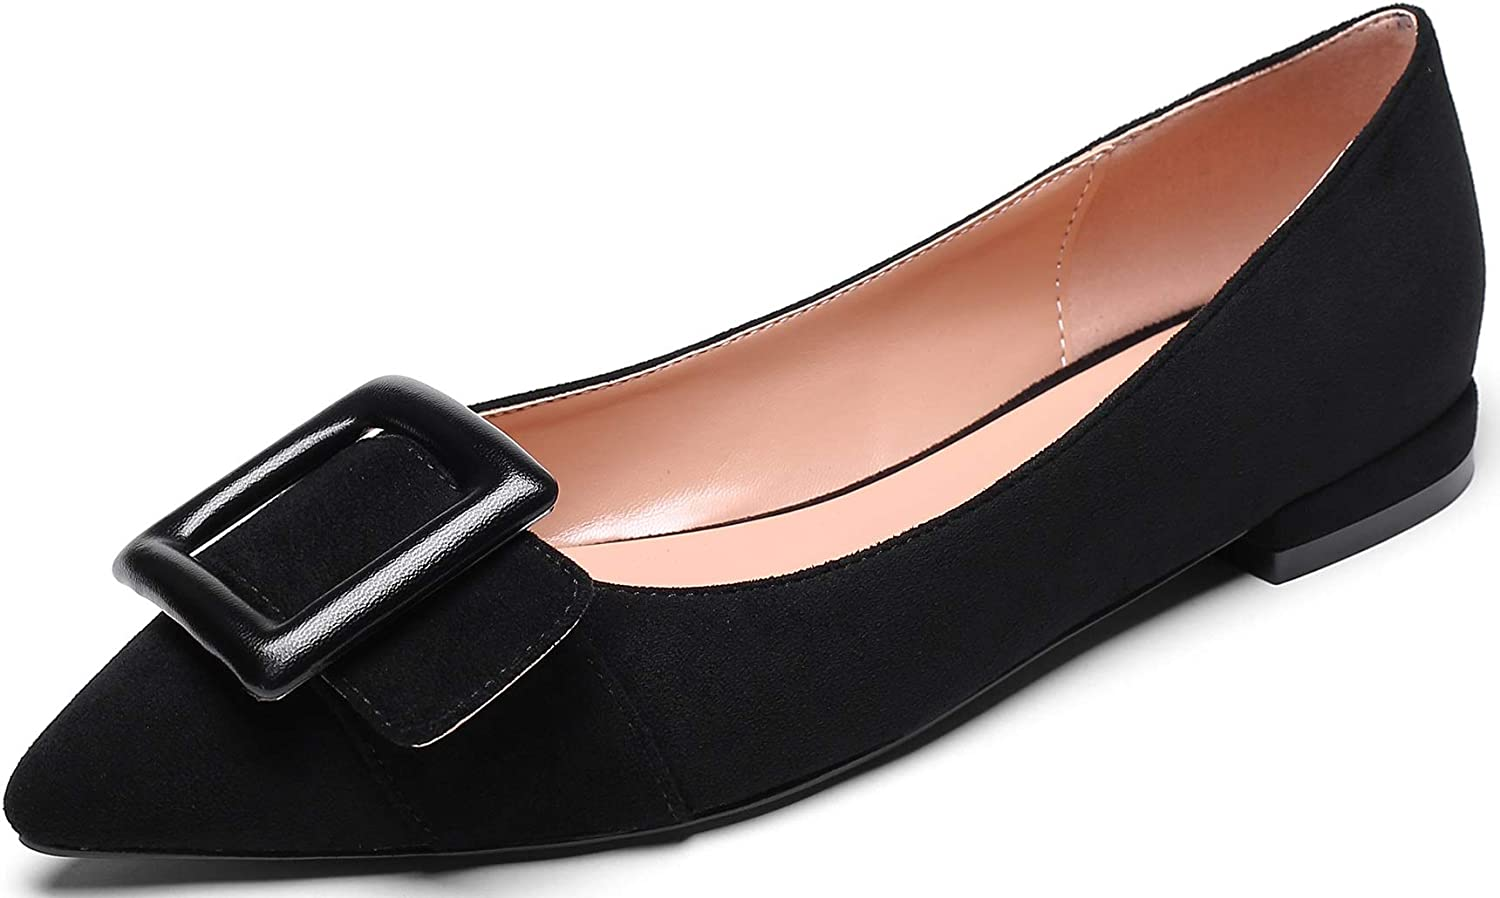 Mettesally Women's Flat Pointed Popular popular Toe Ballet Shoes Milwaukee Mall for Flats